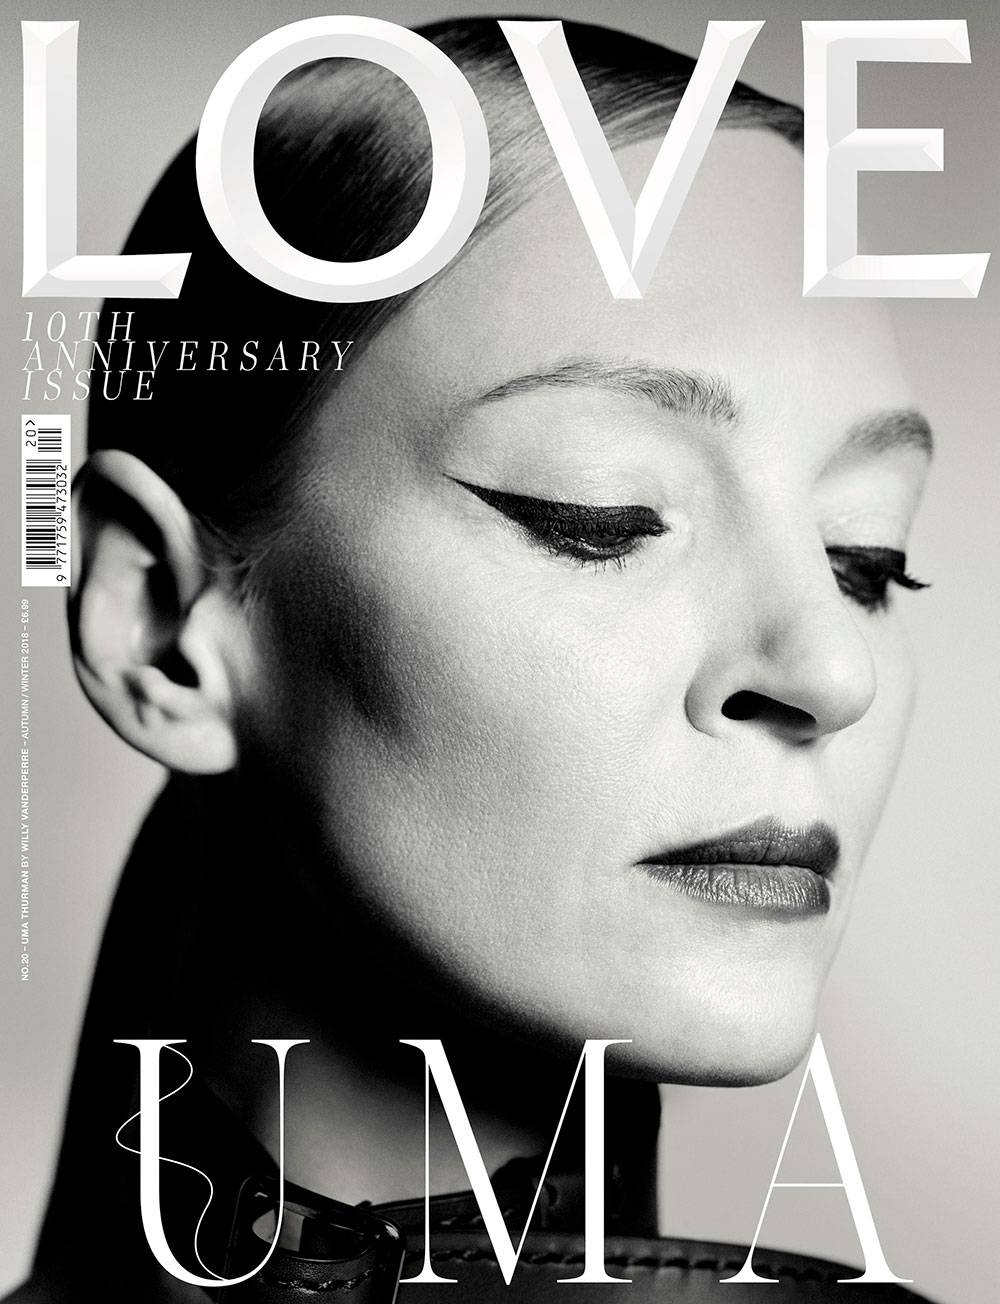 『LOVE』10周年記念号 | Photo by Willy Vanderperre